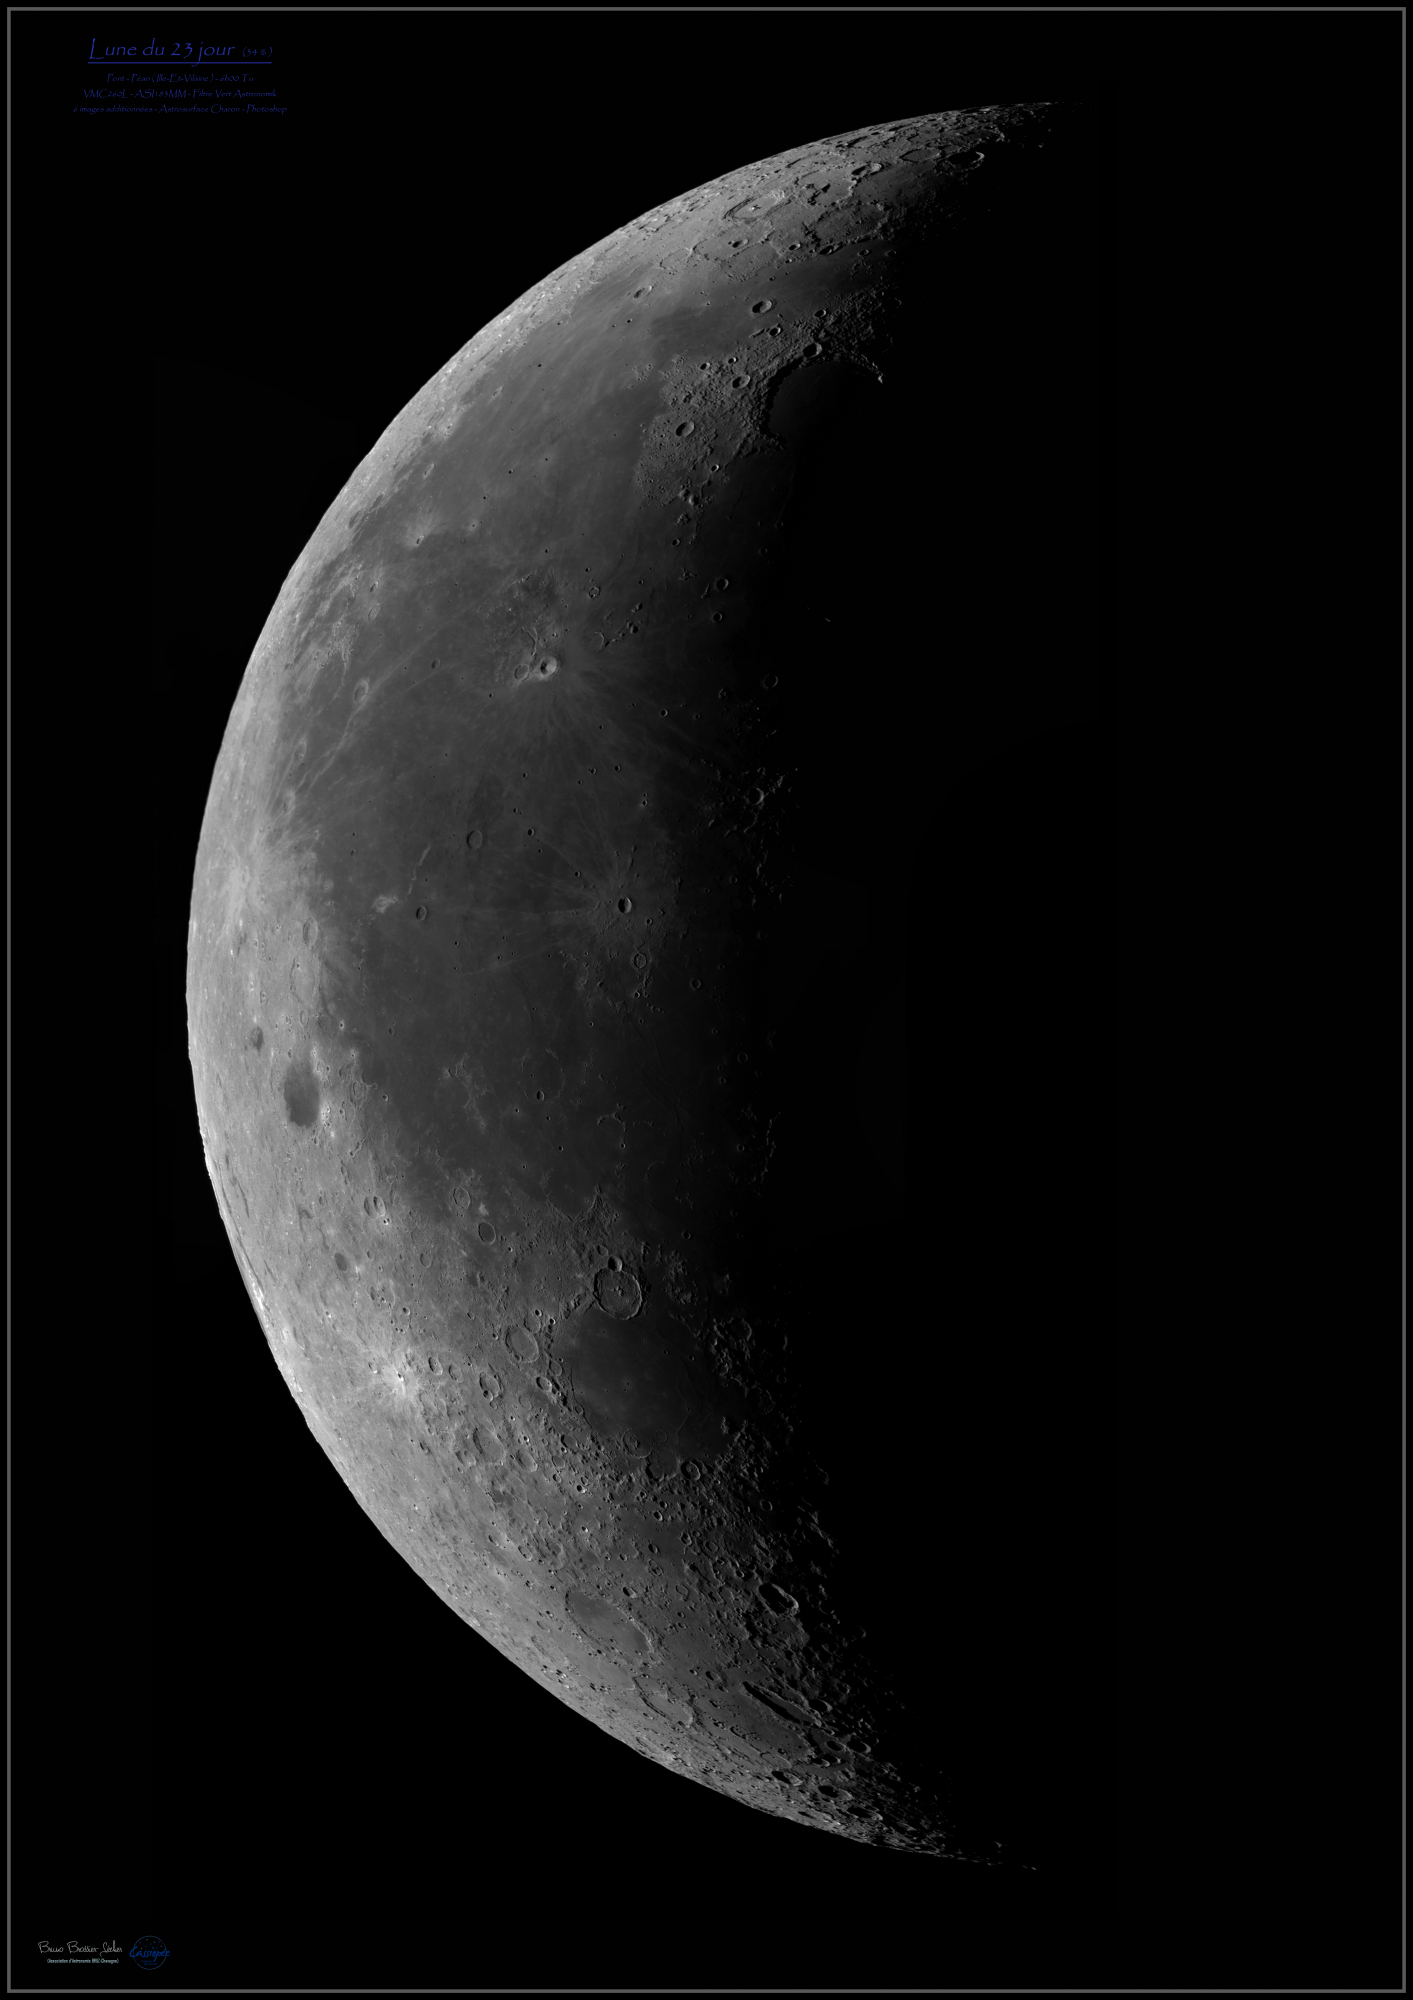 2019-08-25_Lune_41_VMC260L_ASI183MM_Astrosurface_Charon.png